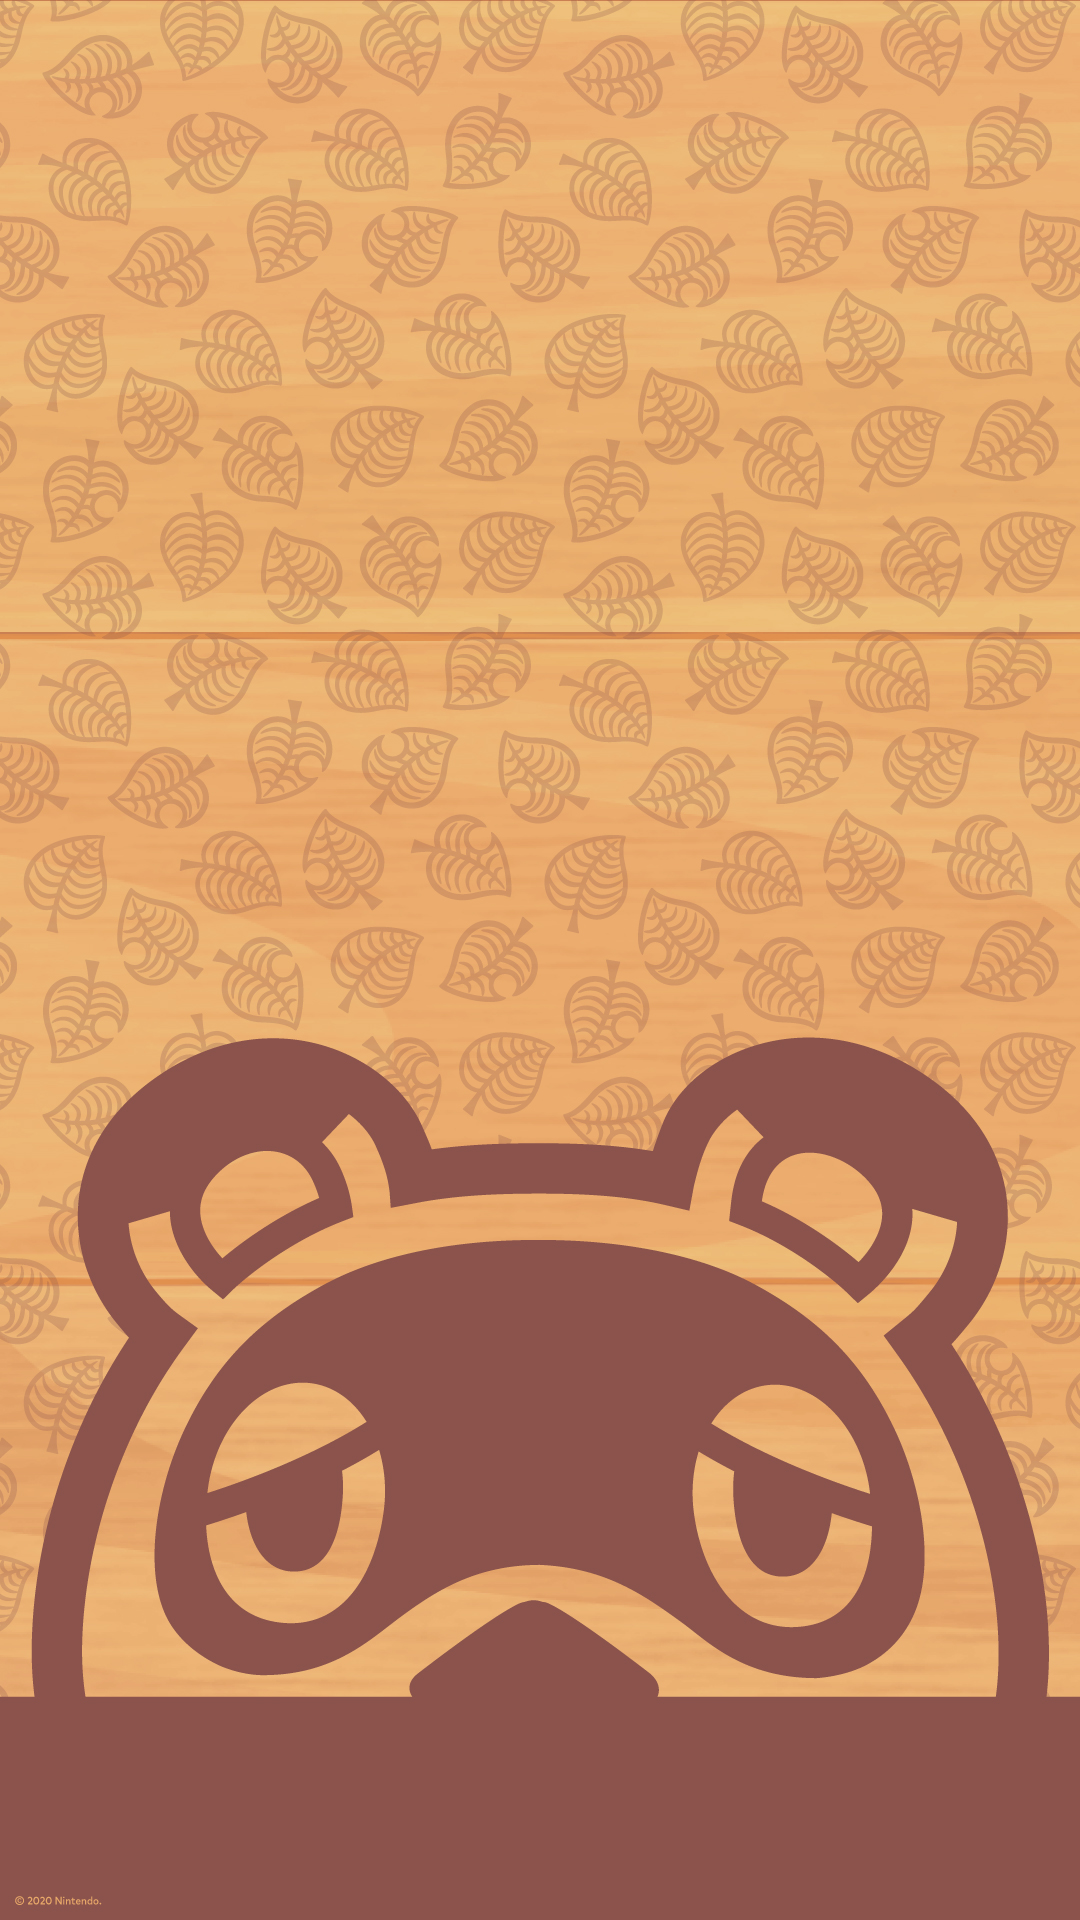 Animal Crossing iPhone wallpaper Walmart iDownloadBlog 1